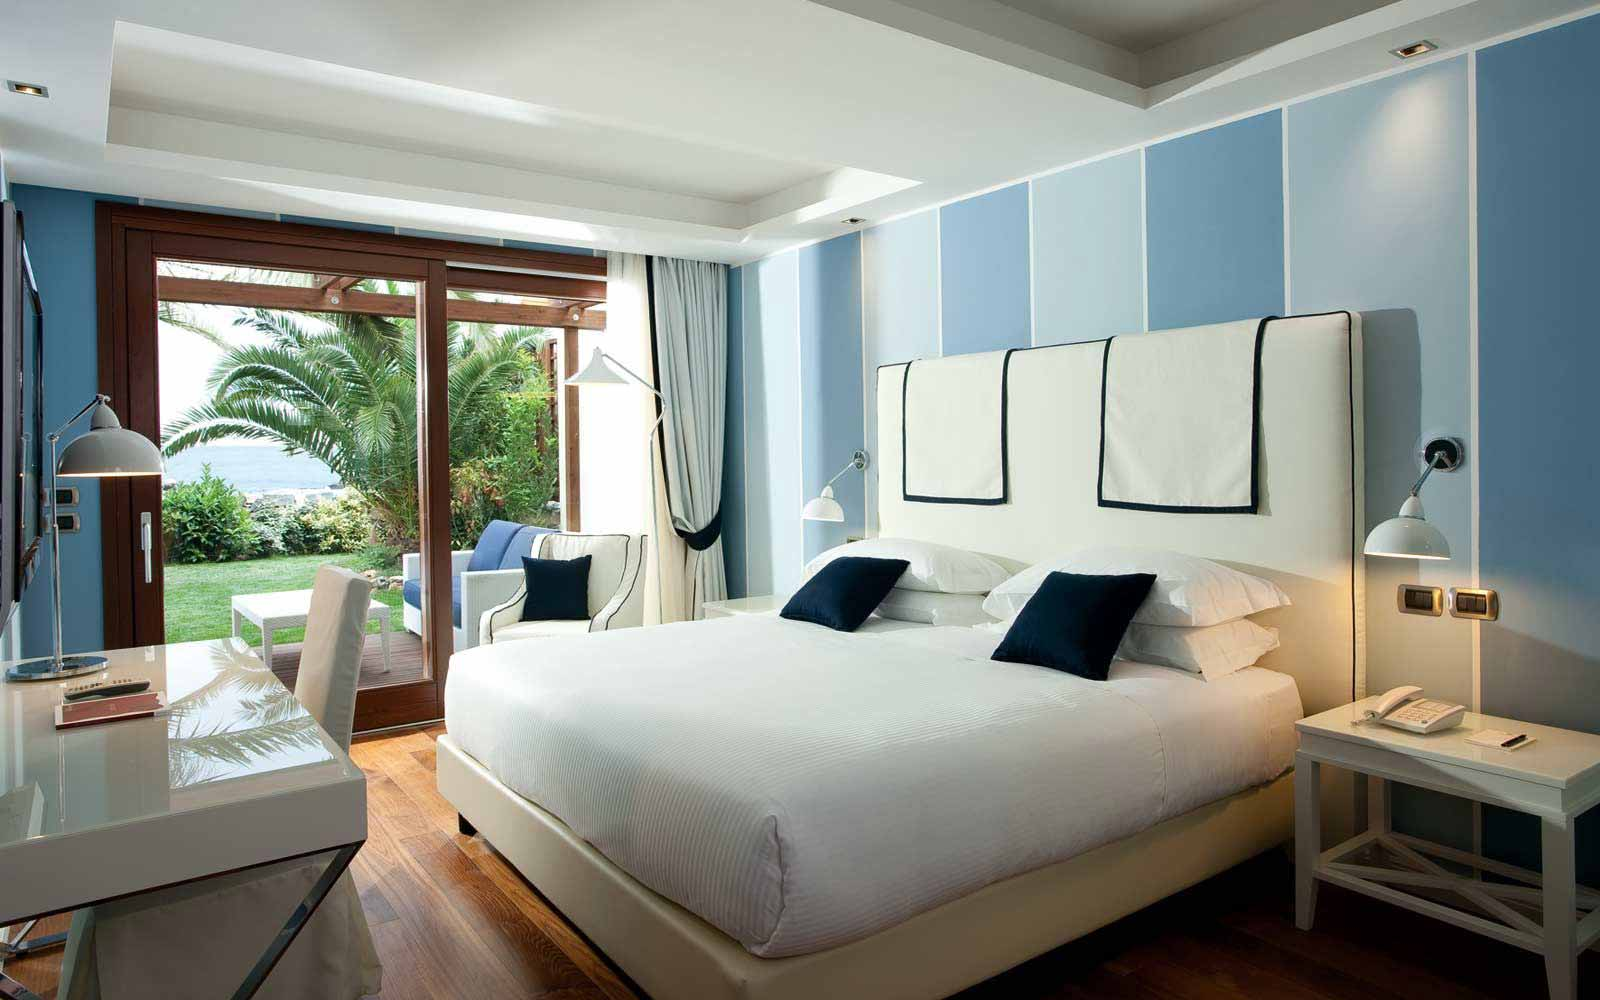 Deluxe room with sea view at the La Plage Resort